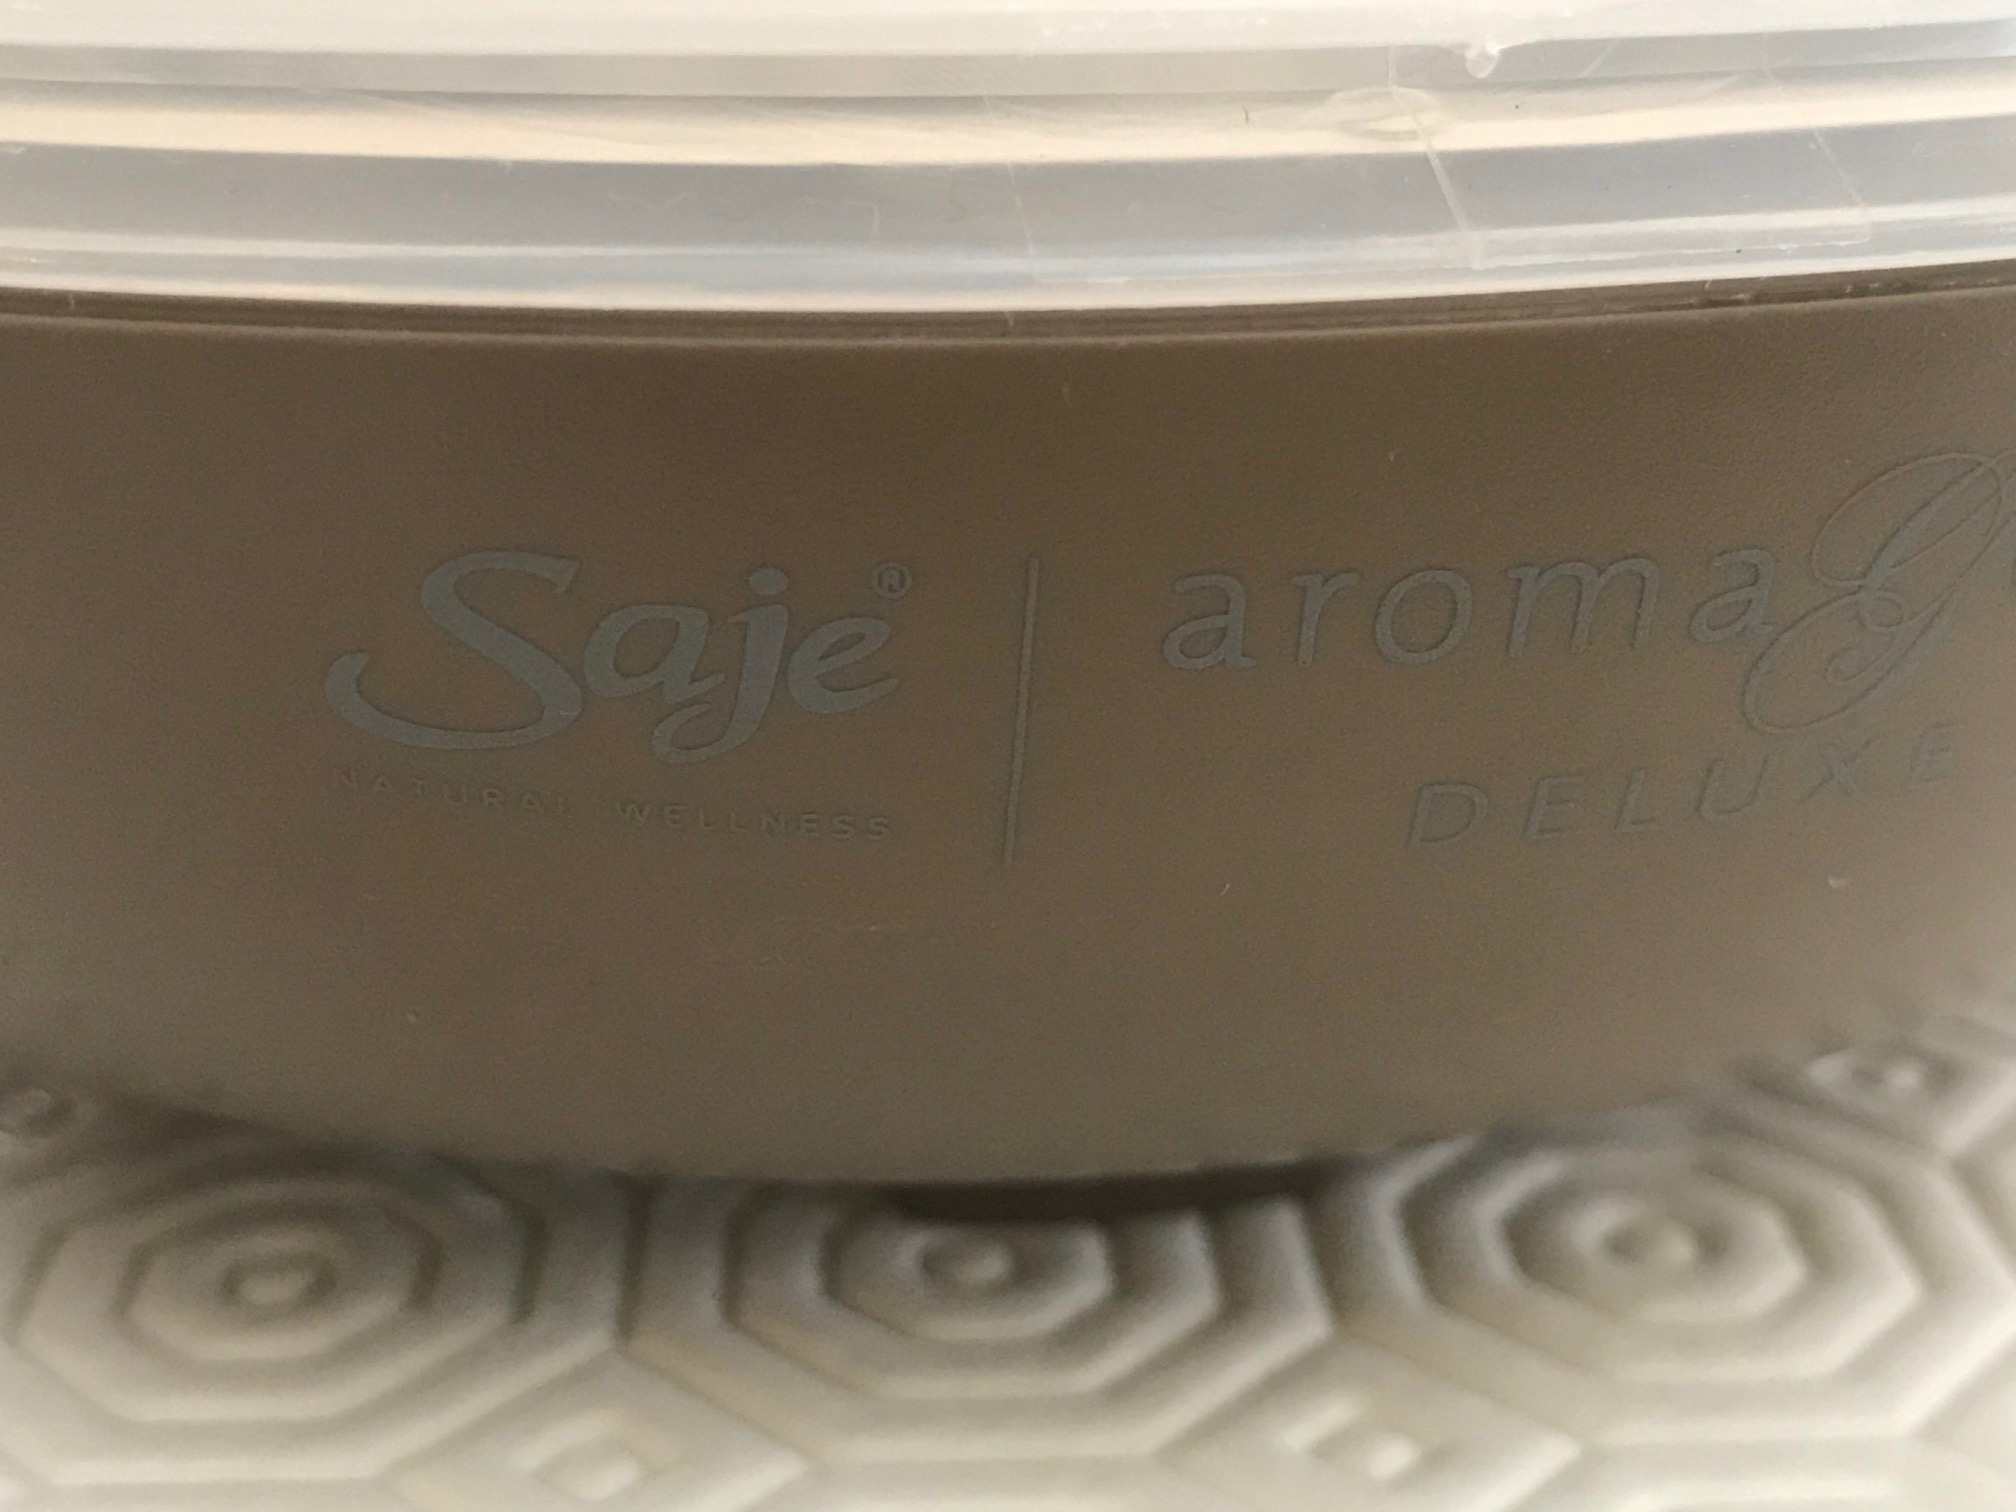 Brown Ceramic Saje Natural Wellness AromaGeni Deluxe Essential Oil Diffuser: 437,400 ppm Lead in center of inside of unit.